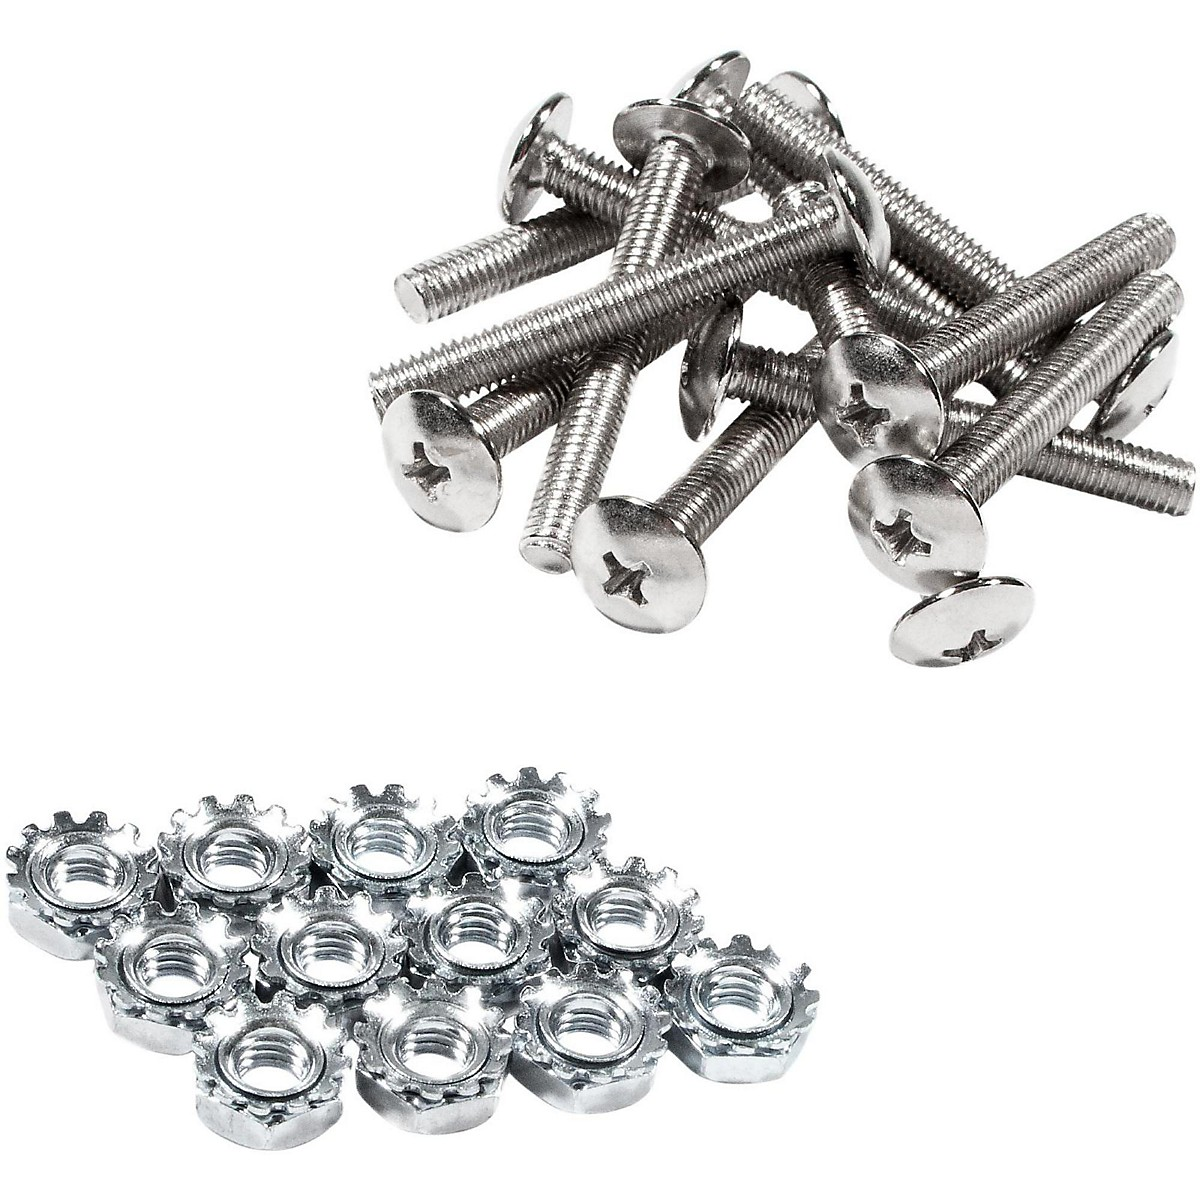 Fender Pure Vintage Chassis Mounting Screws/Nuts